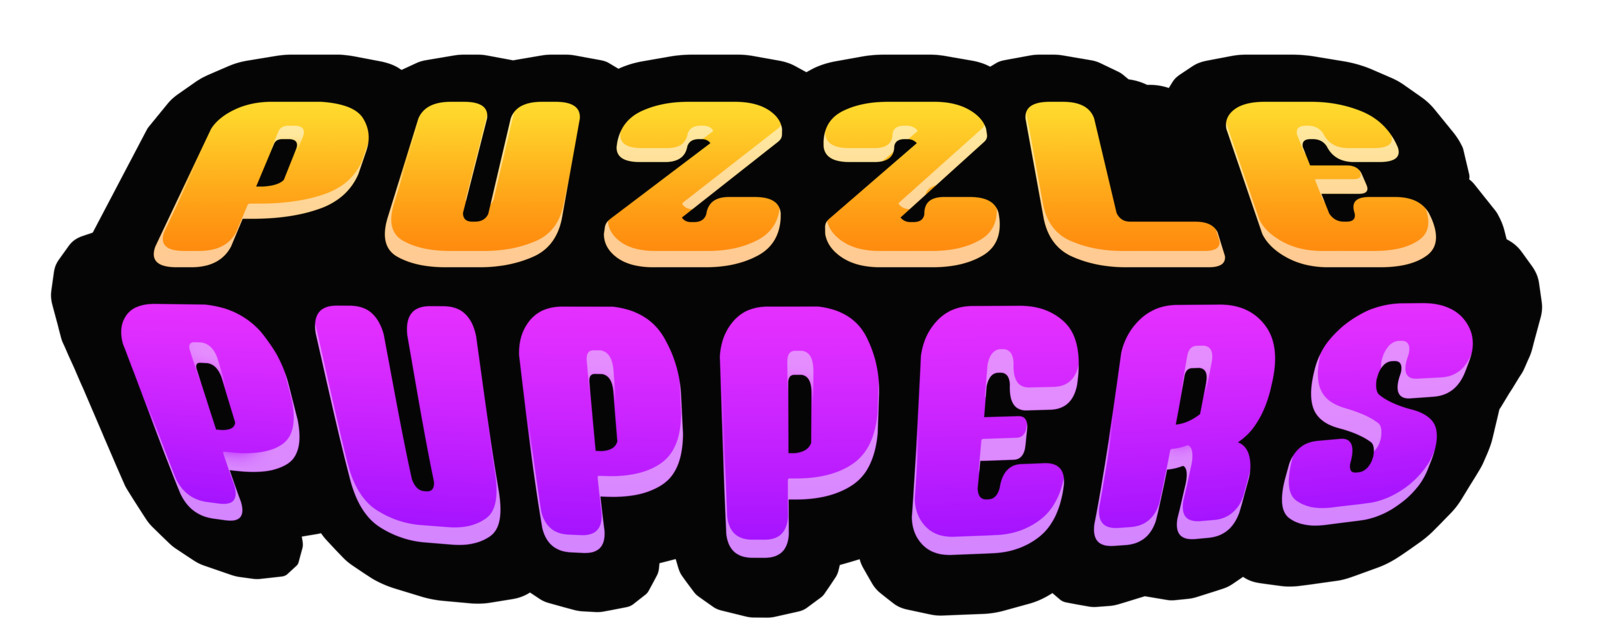 The logo of Puzzle Puppers